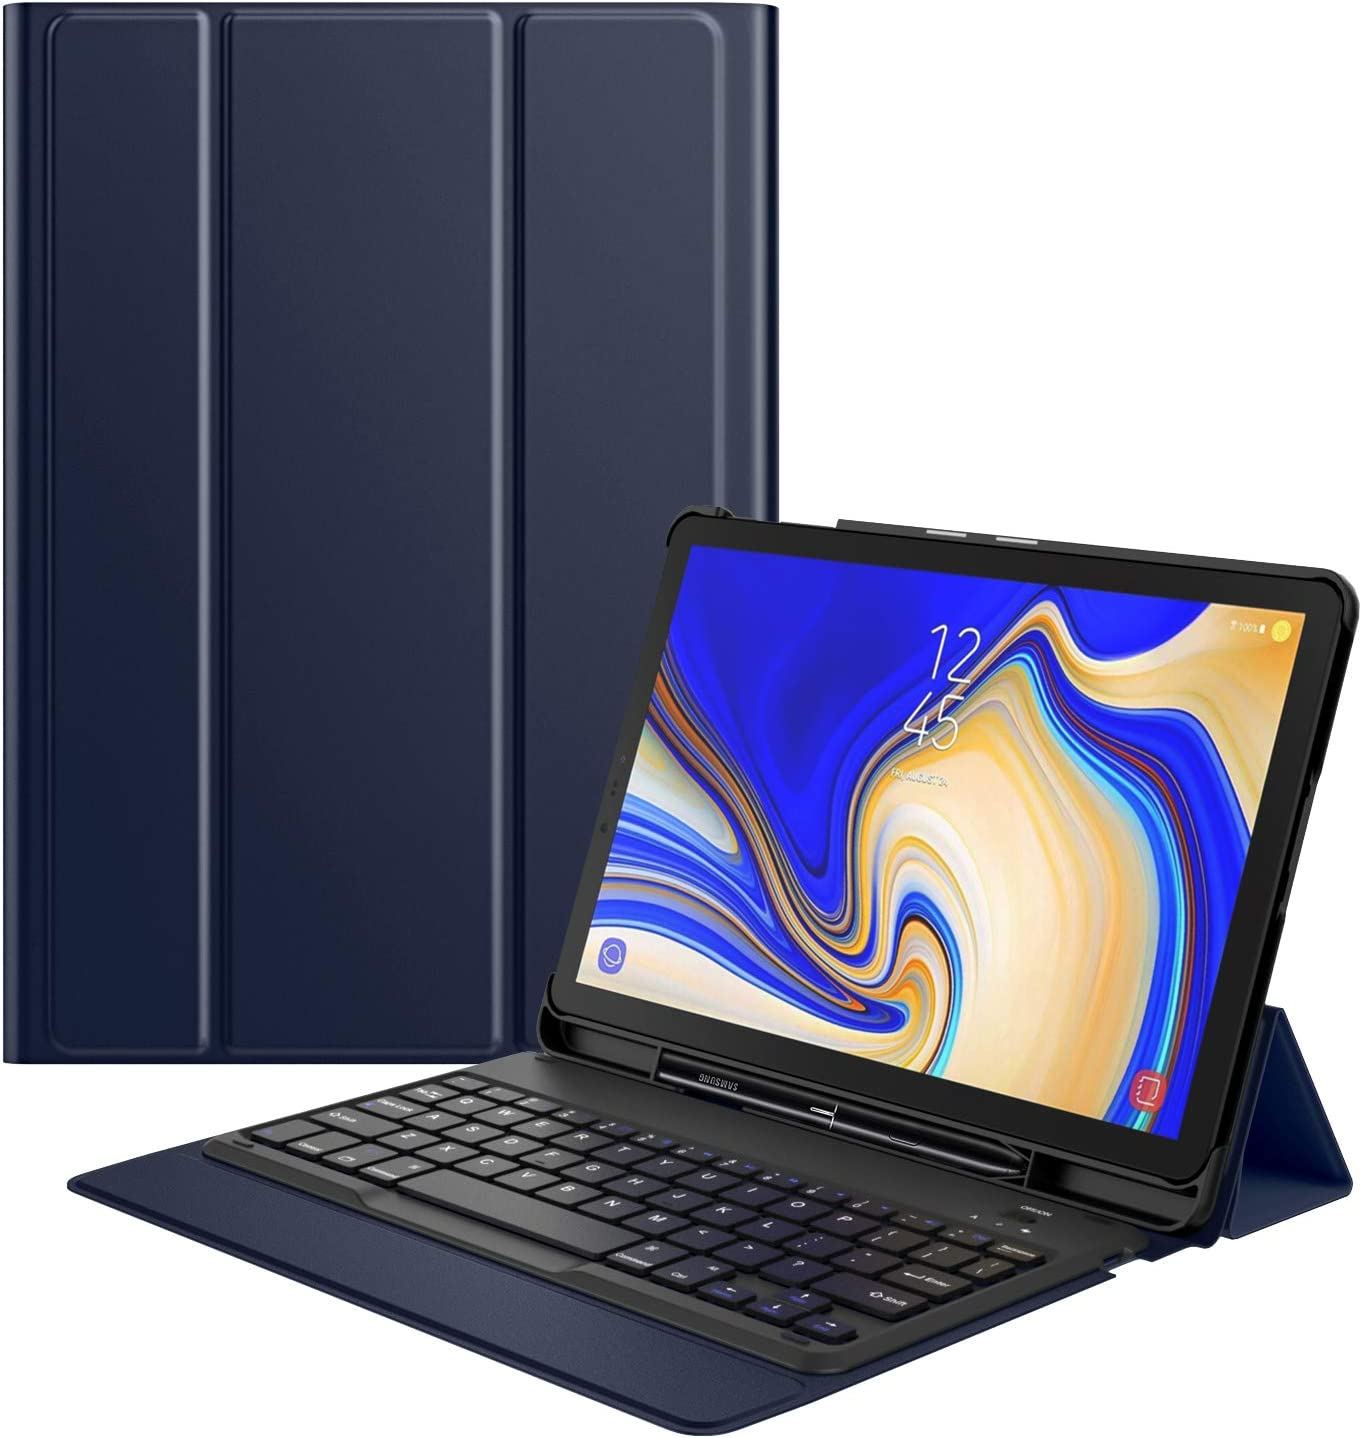 MoKo Keyboard Case Fit Samsung Galaxy Tab S4 10.5 w/S Pen Holder, Wireless Bluetooth Keyboard Cover Case Compatible Galaxy Tab S4 10.5 Inch (SM-T830 and SM-T835) 2018 Release Tablet - Indigo